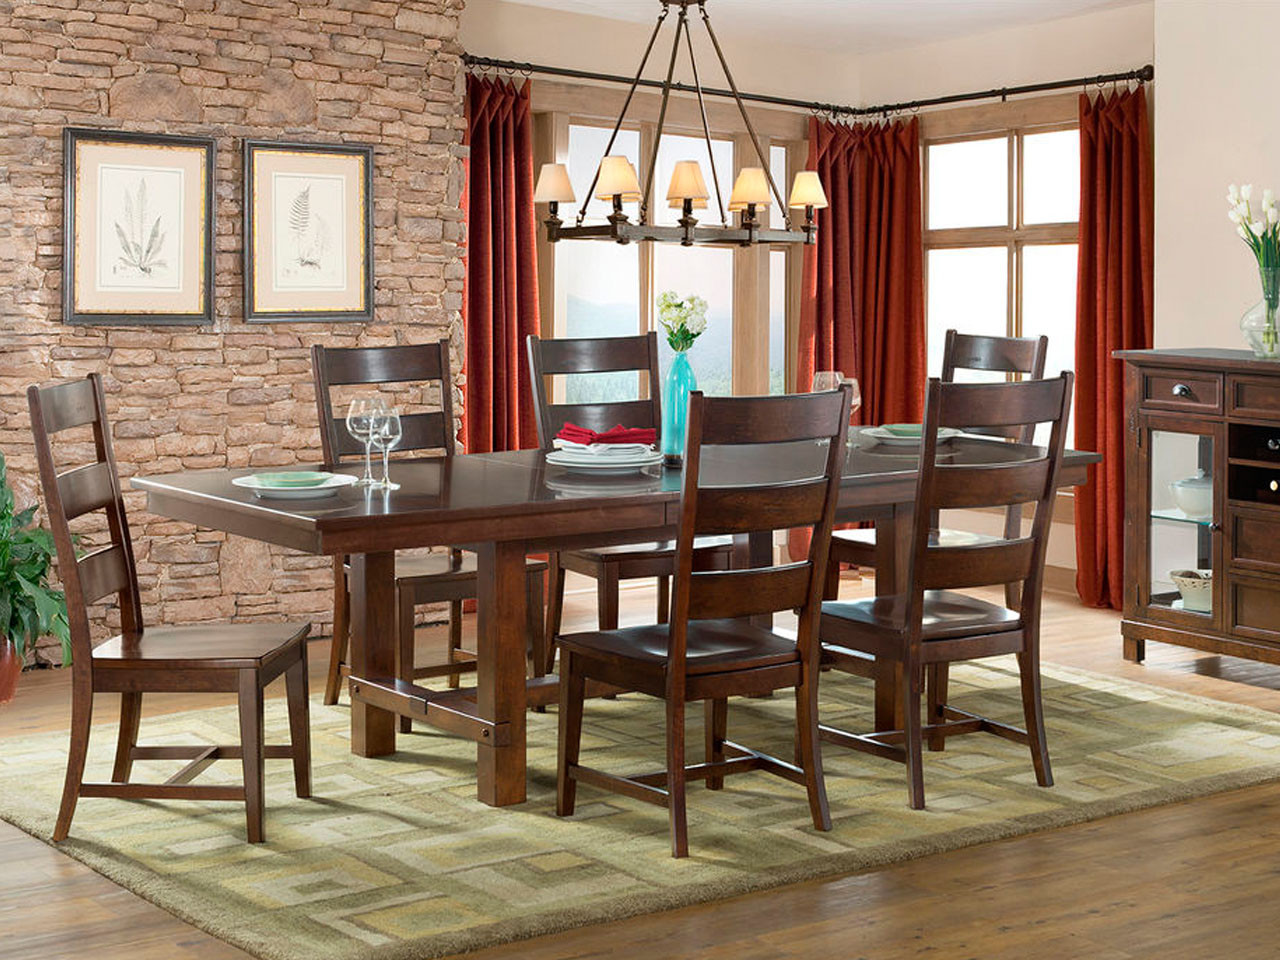 Star Valley Ladder Back Side Chair U0026 Table Set Star Valley Collection By  Intercon Offers Quality